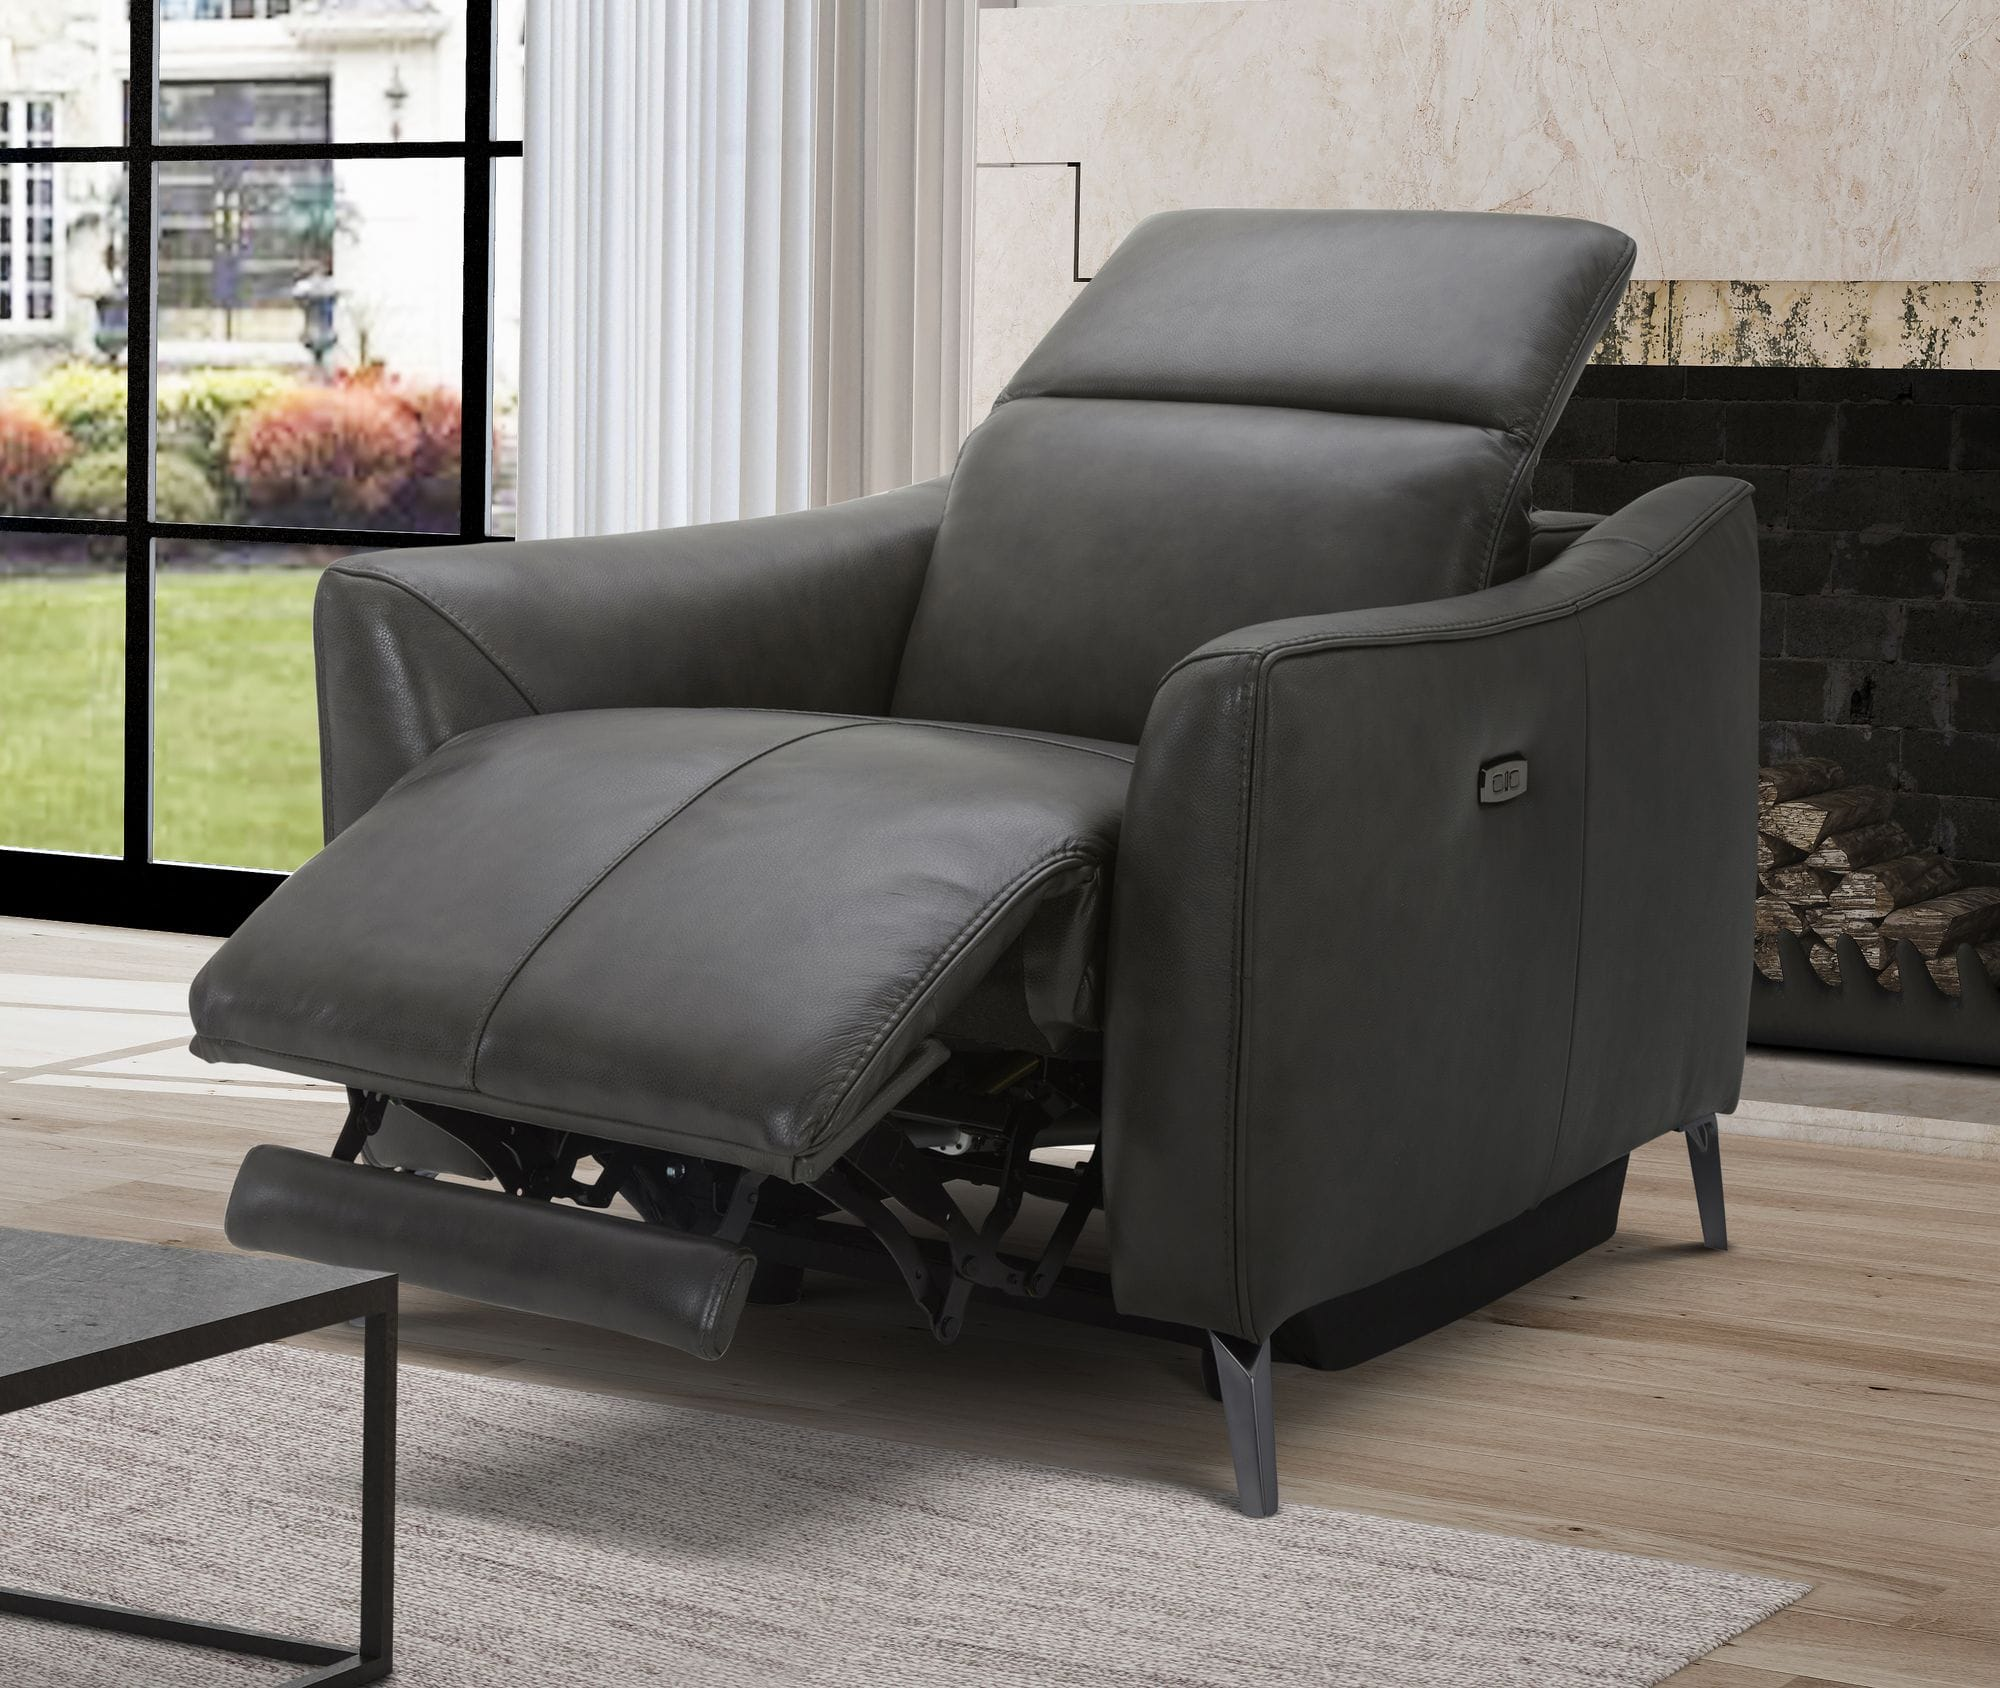 VIG Furniture Divani Casa Prairie Dark Grey Leather Electric Recliner Chair with Electric Headrest